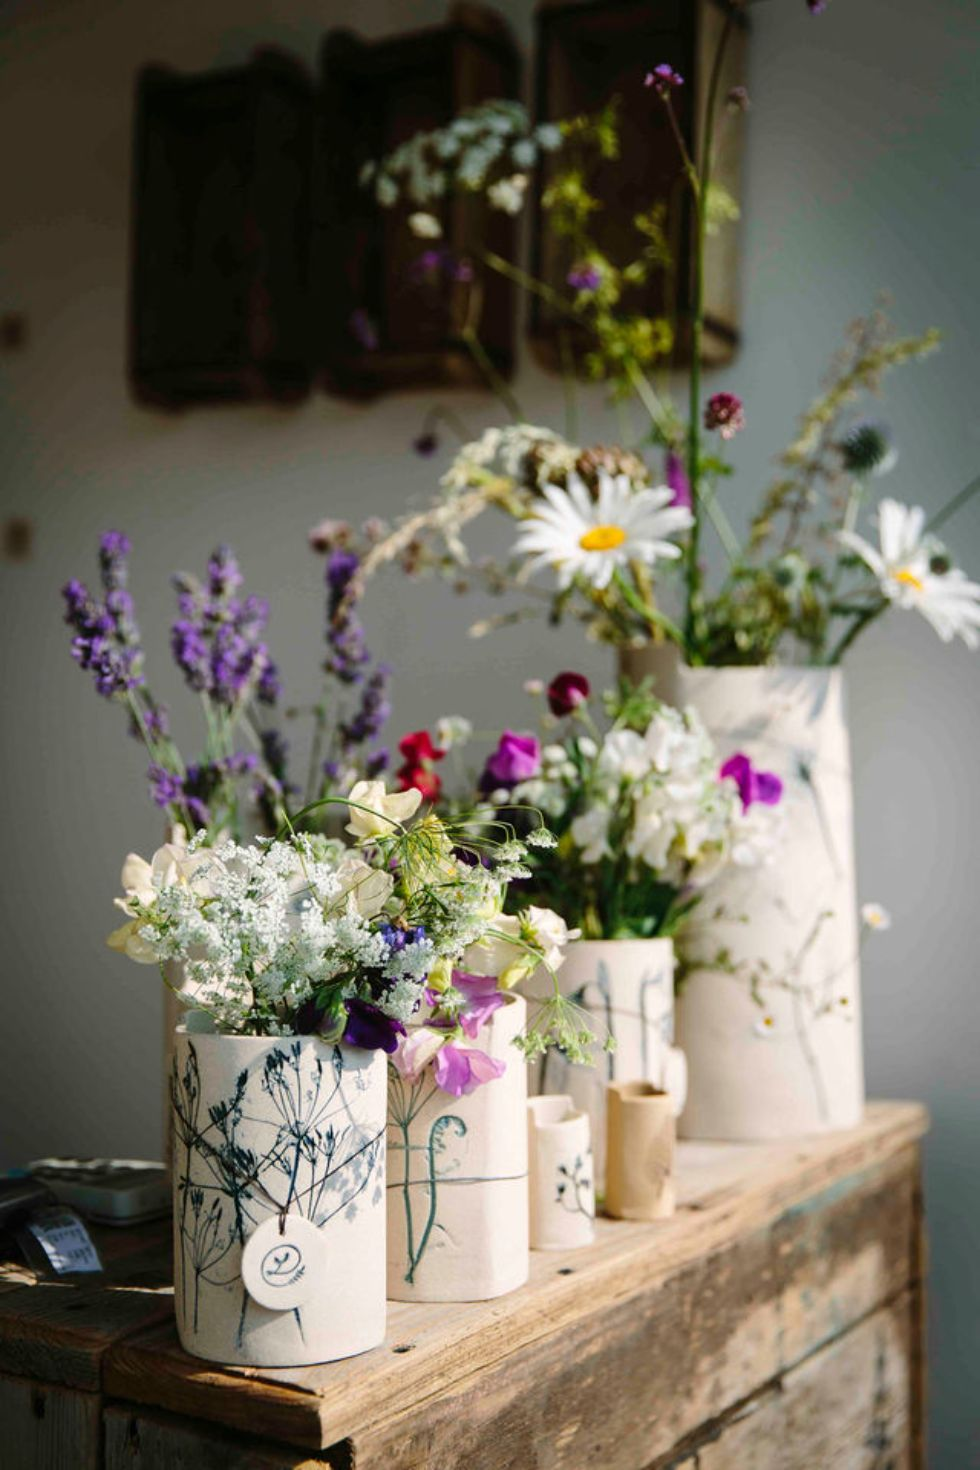 Floral display by Louise Condon, the Ceramic Botanist